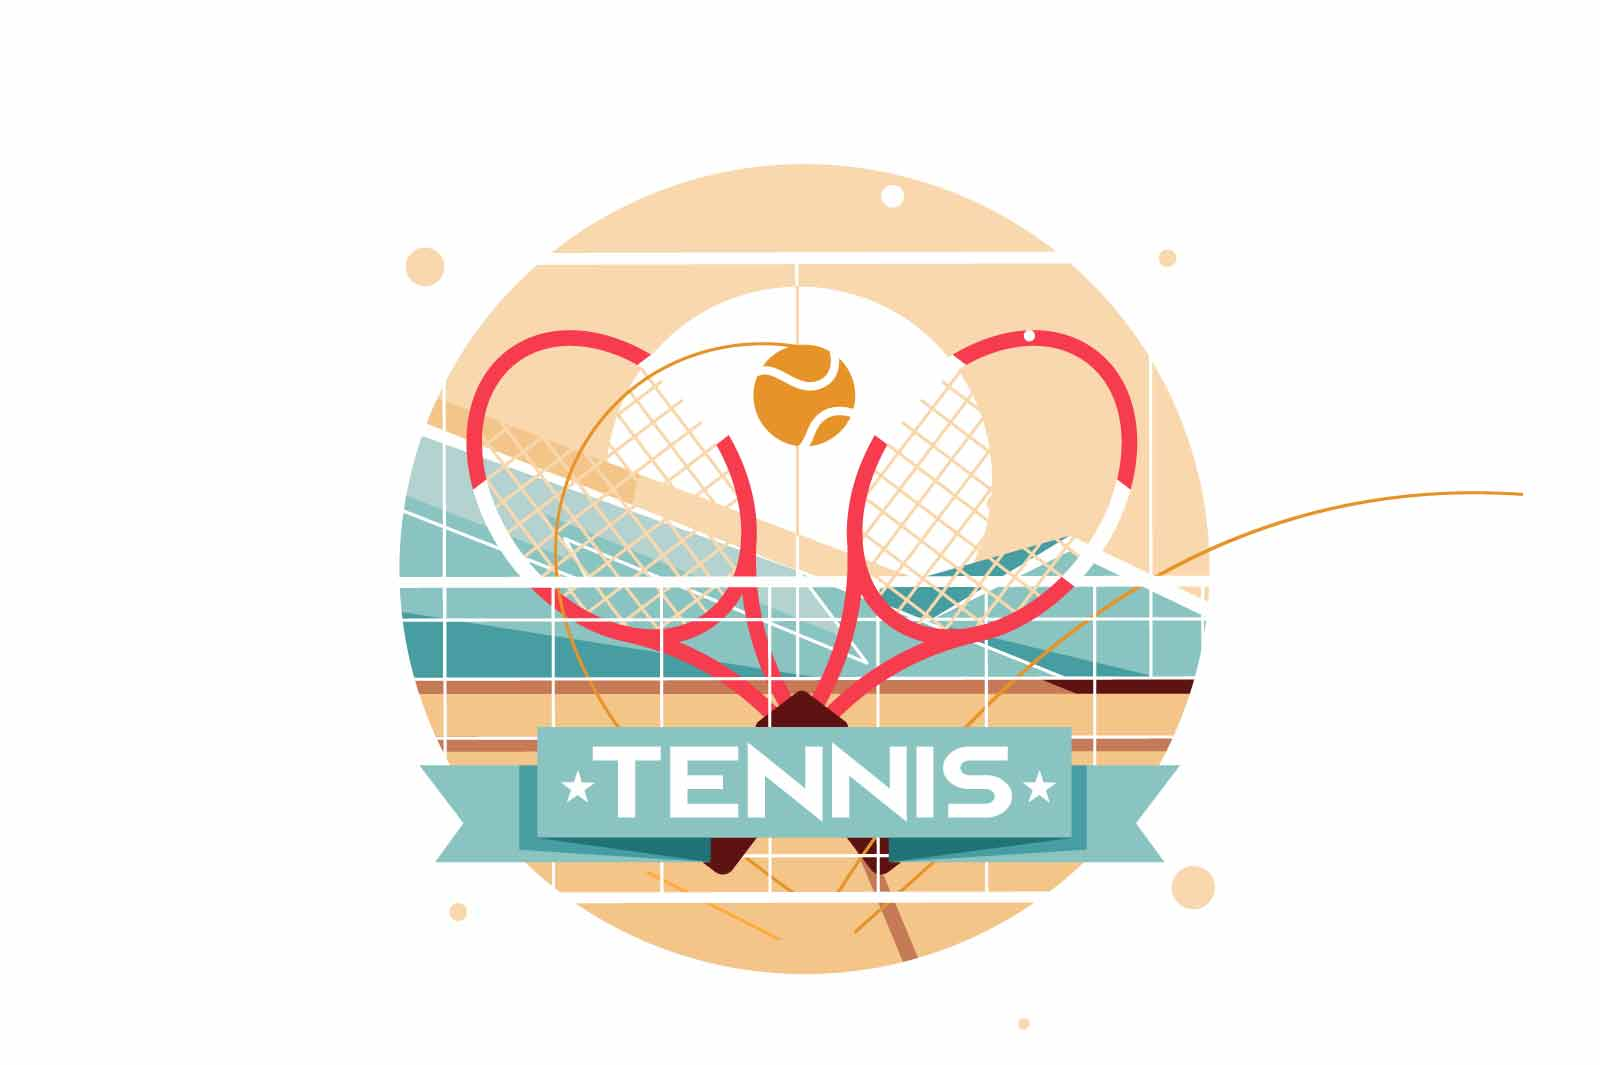 Flat icon of two crossed tennis rackets for tennis player. Isolated symbol concept of sport playing equipment in game performs achievement in competition. Vector illustration.